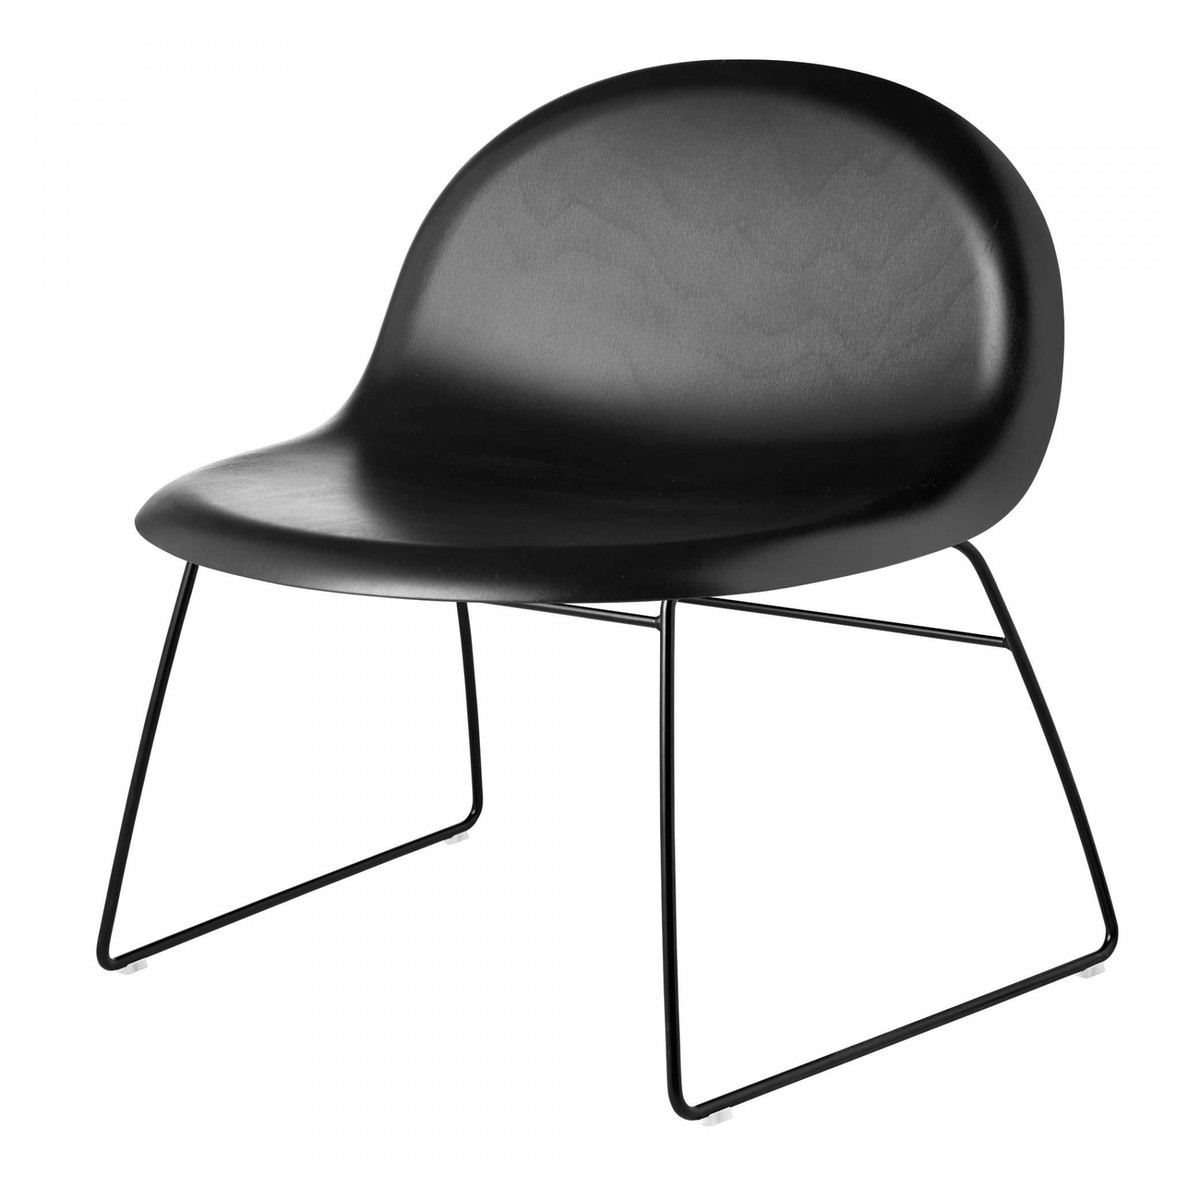 gubi 3d lounge chair sessel mit kufengestell gubi. Black Bedroom Furniture Sets. Home Design Ideas